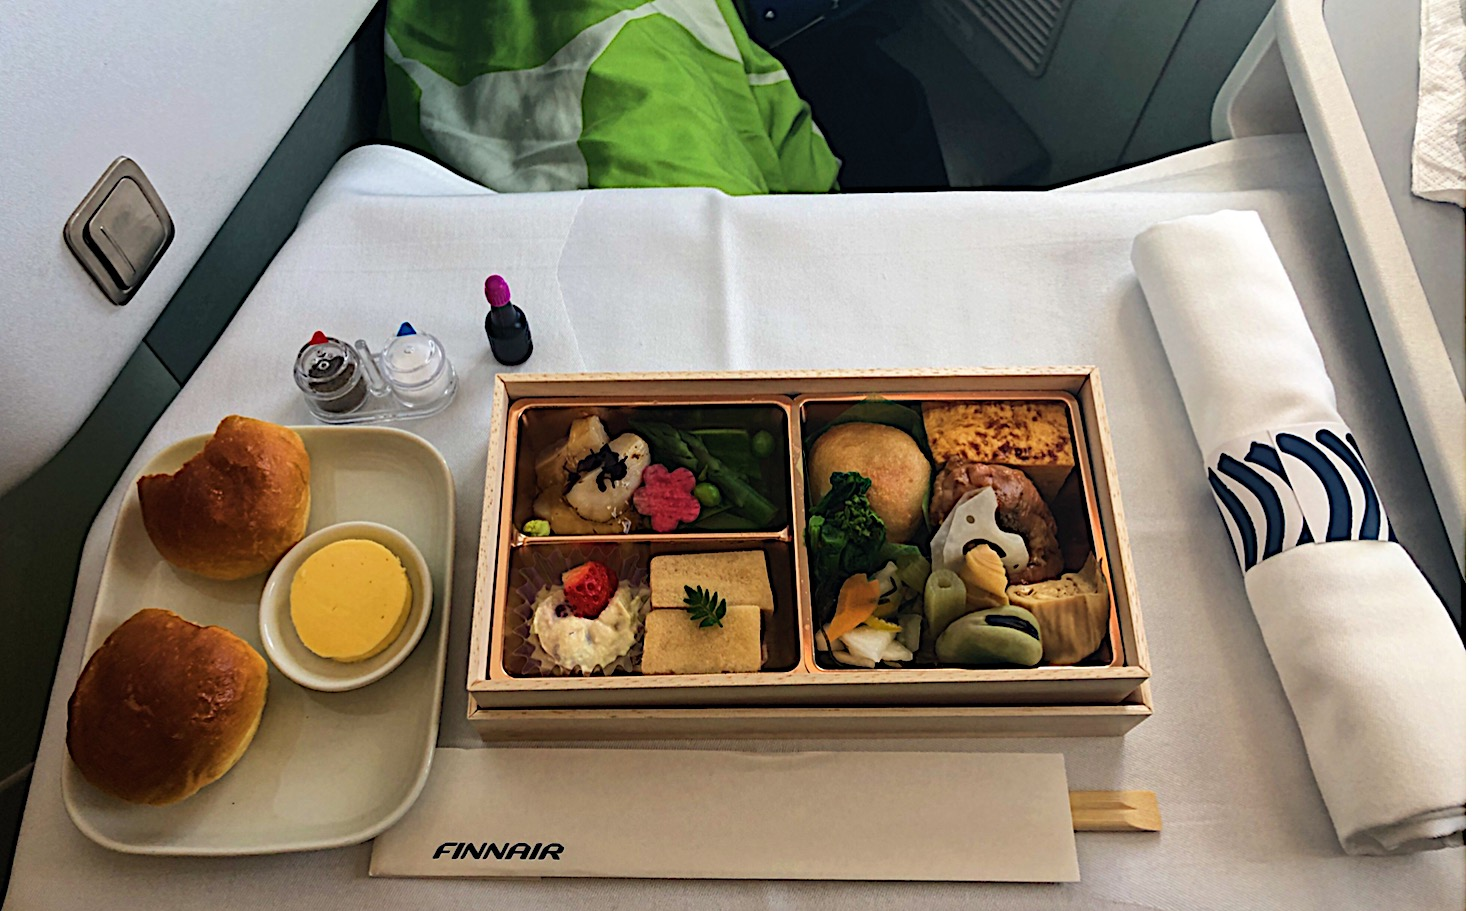 Wonderful Japanese Meal on Finnair Business Class